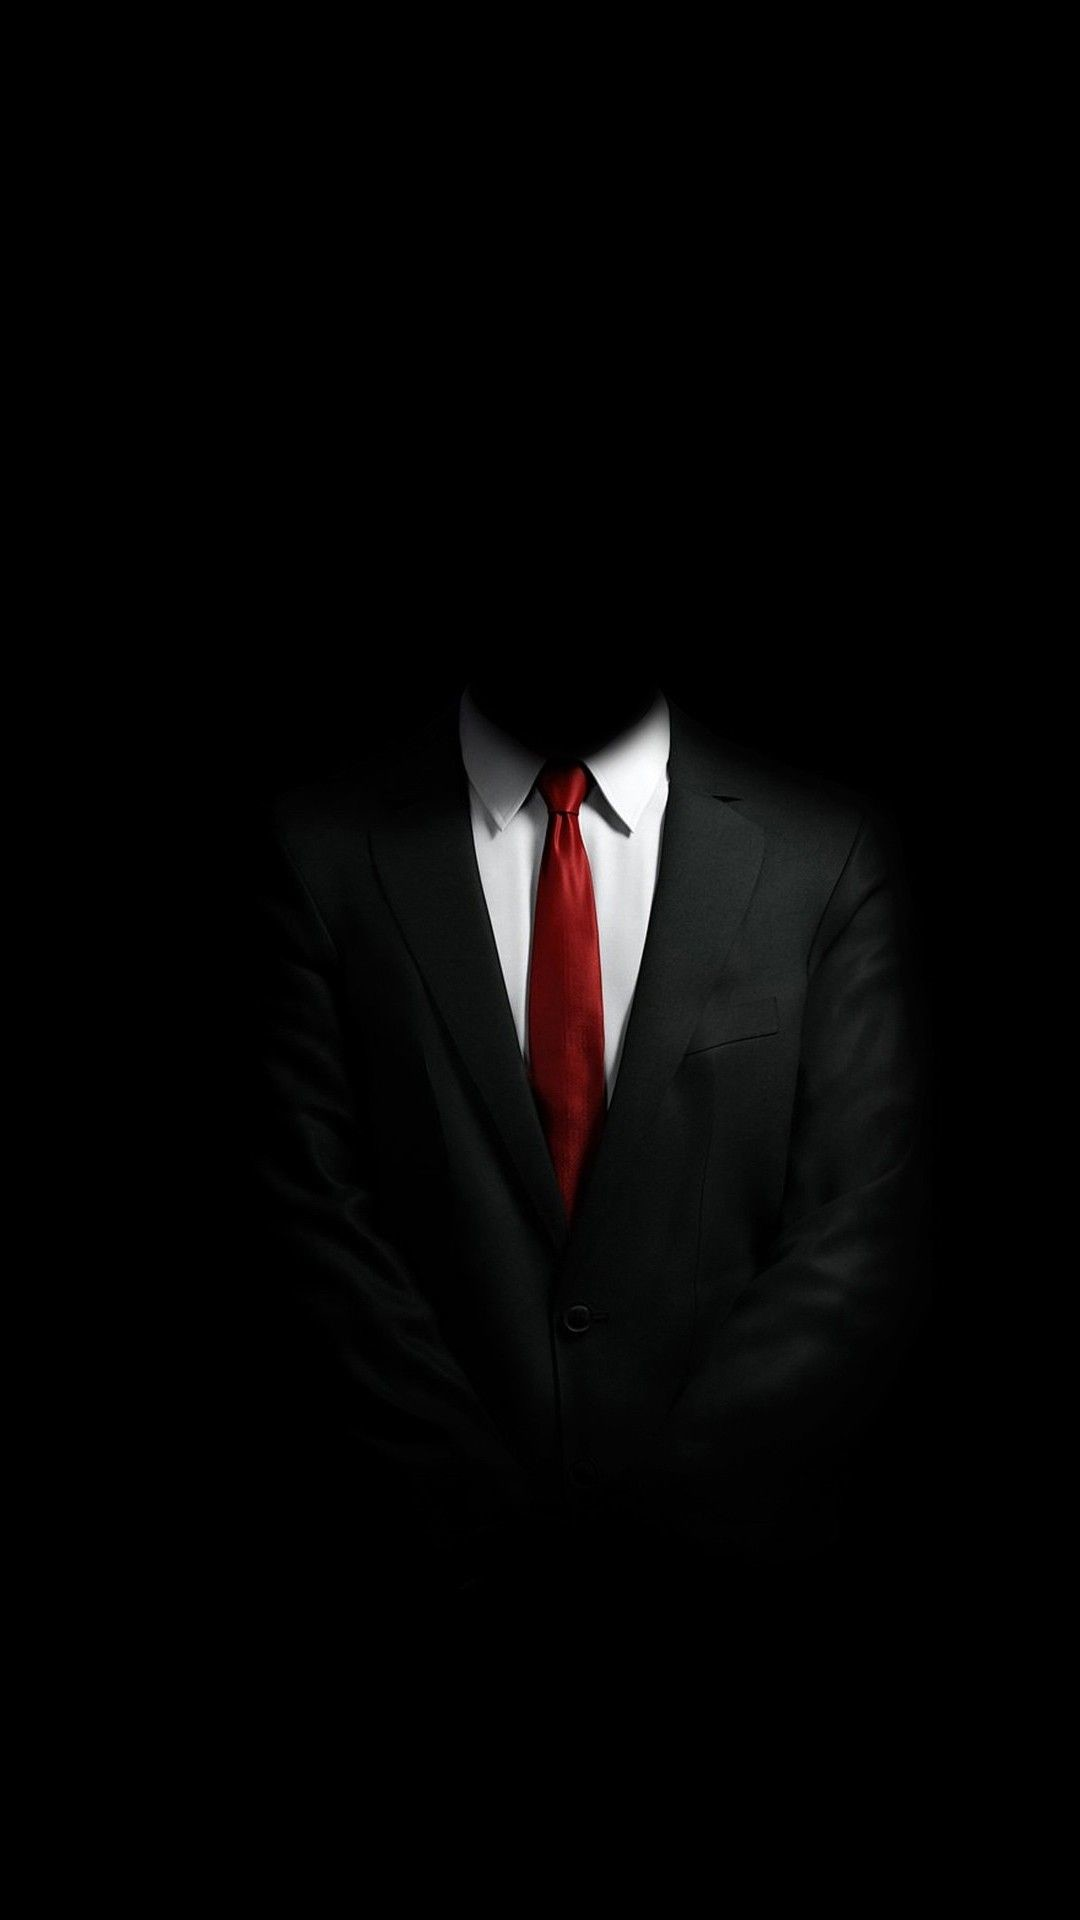 1080x1920 Mystery Man in Suit Smartphone Wallpaper and Lockscreen HD